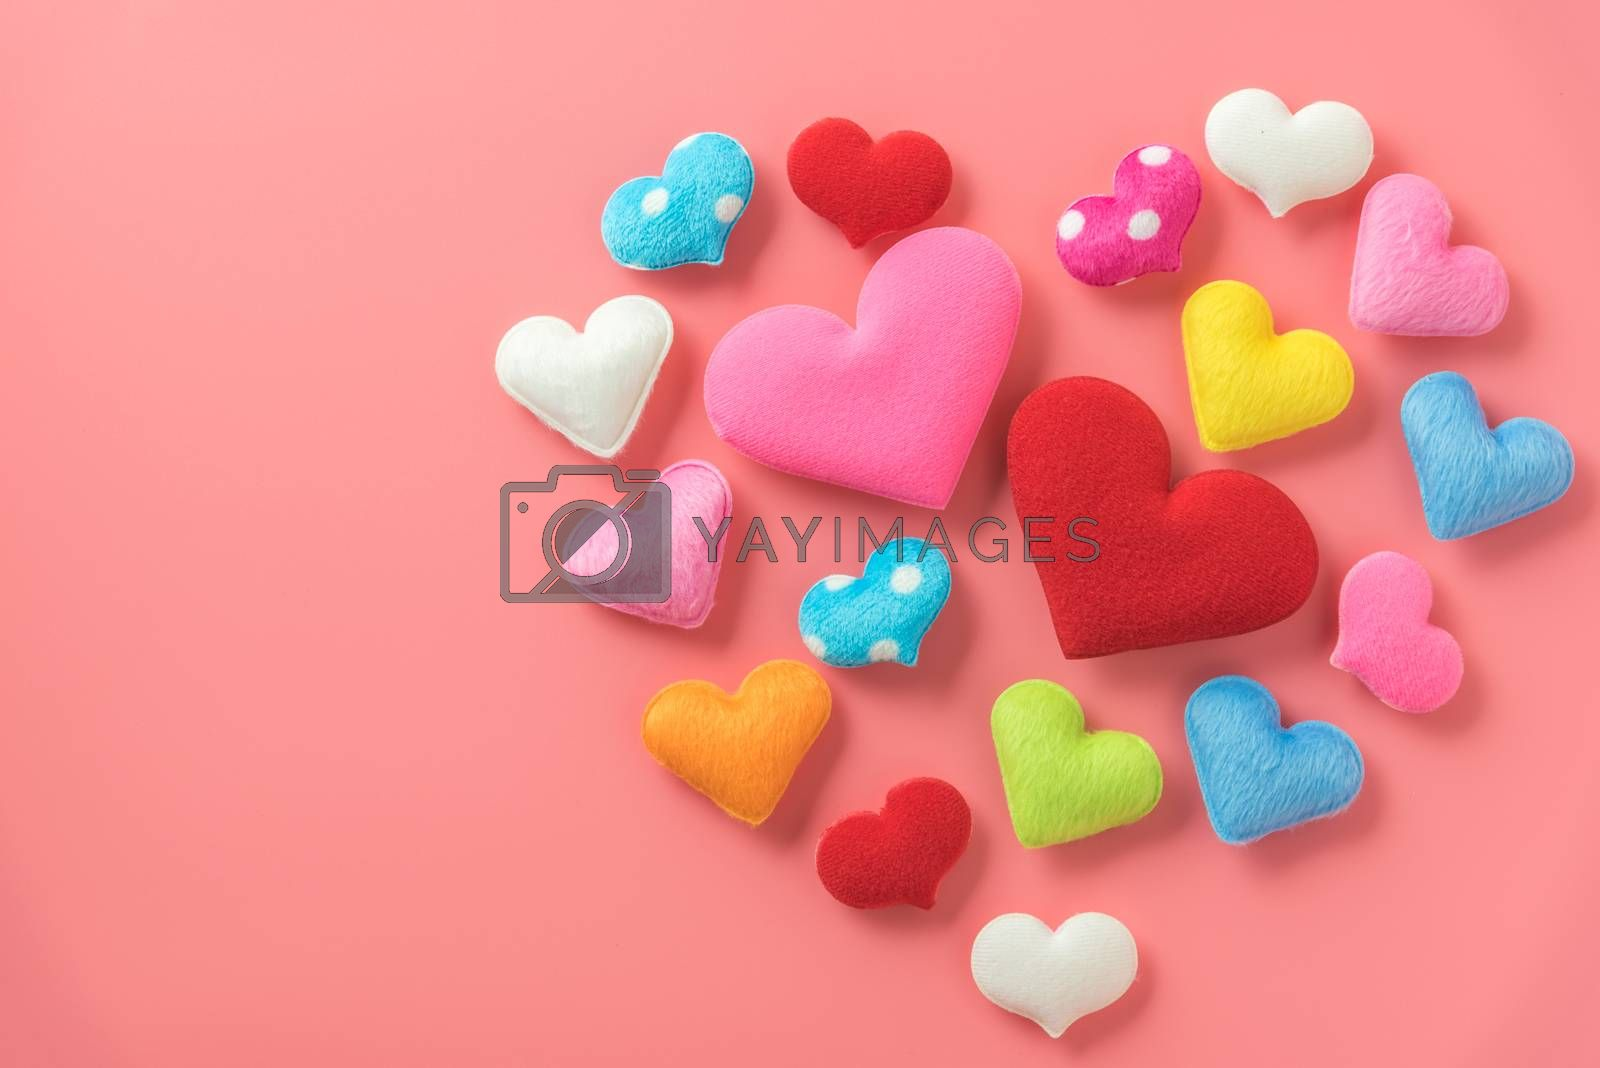 mini heart in heart shape on pink background by Lerttanapunyaporn